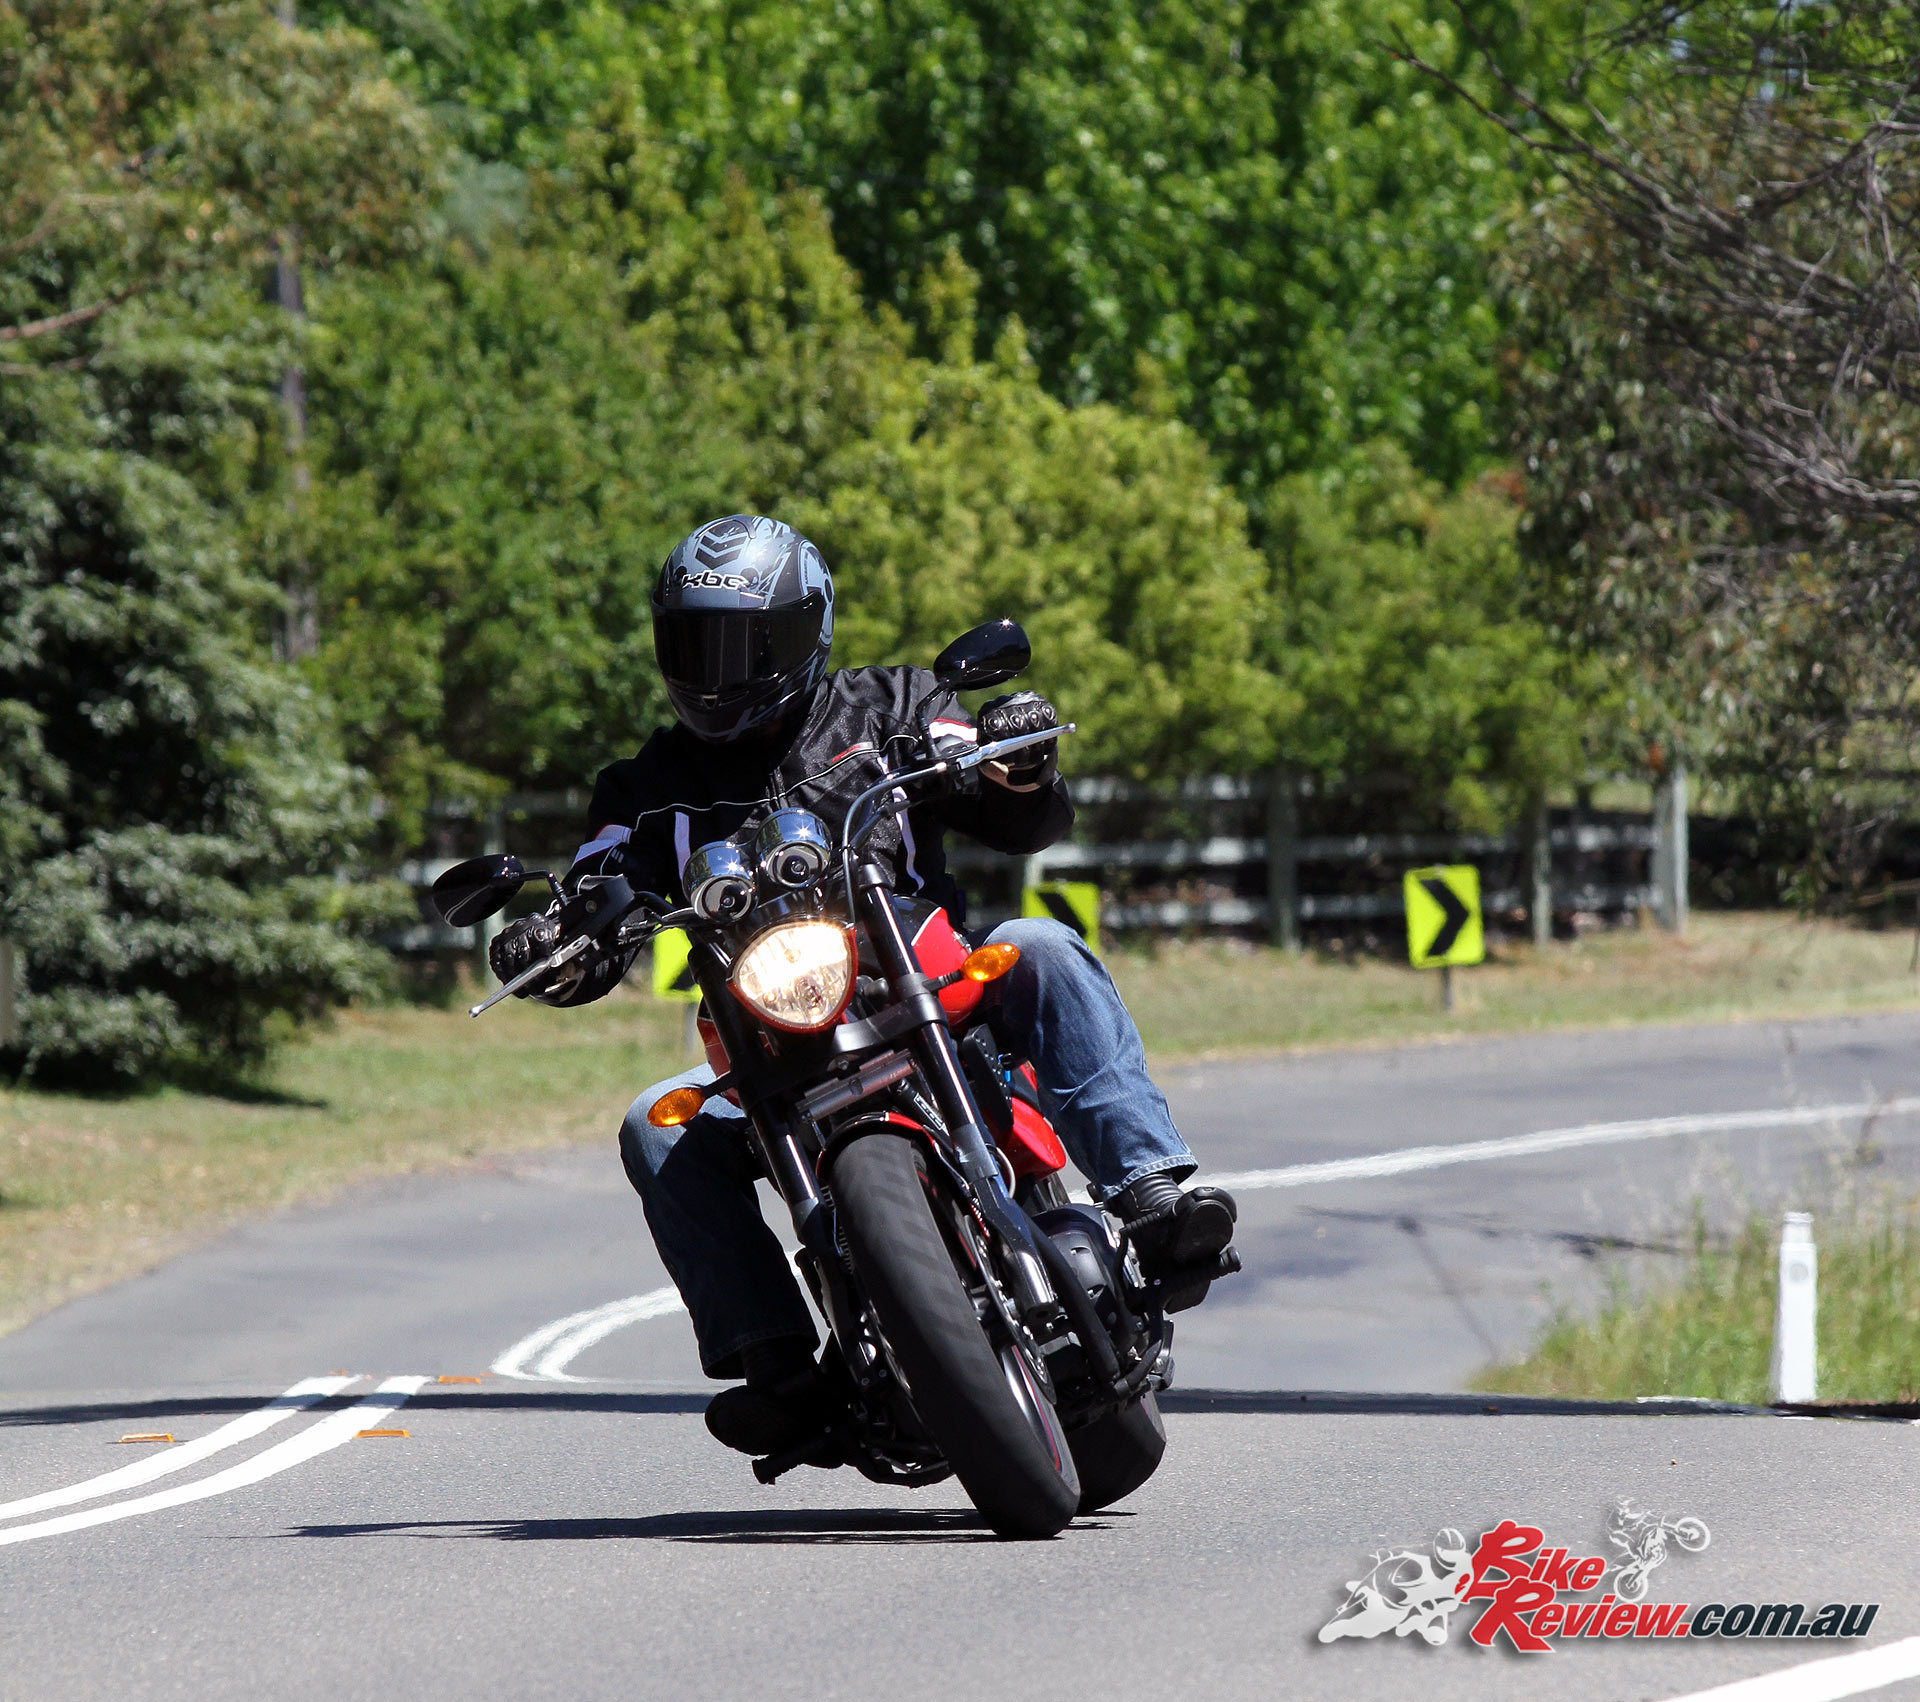 Review: 2016 Victory Hammer S - Bike Review